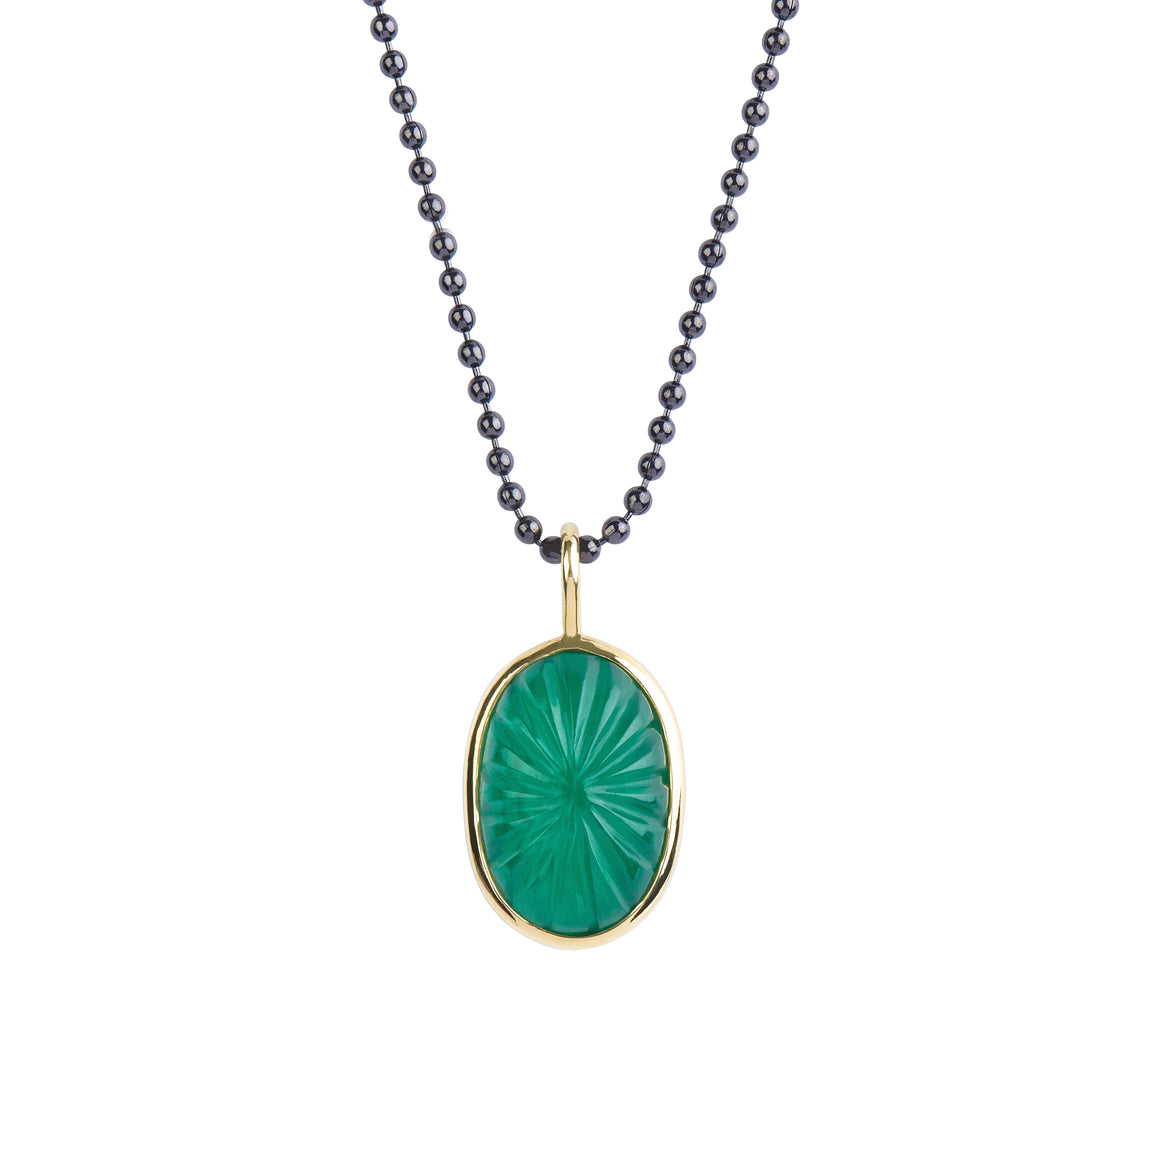 Carved White Quartz over Malachite Pendant in 18kt Yellow Gold